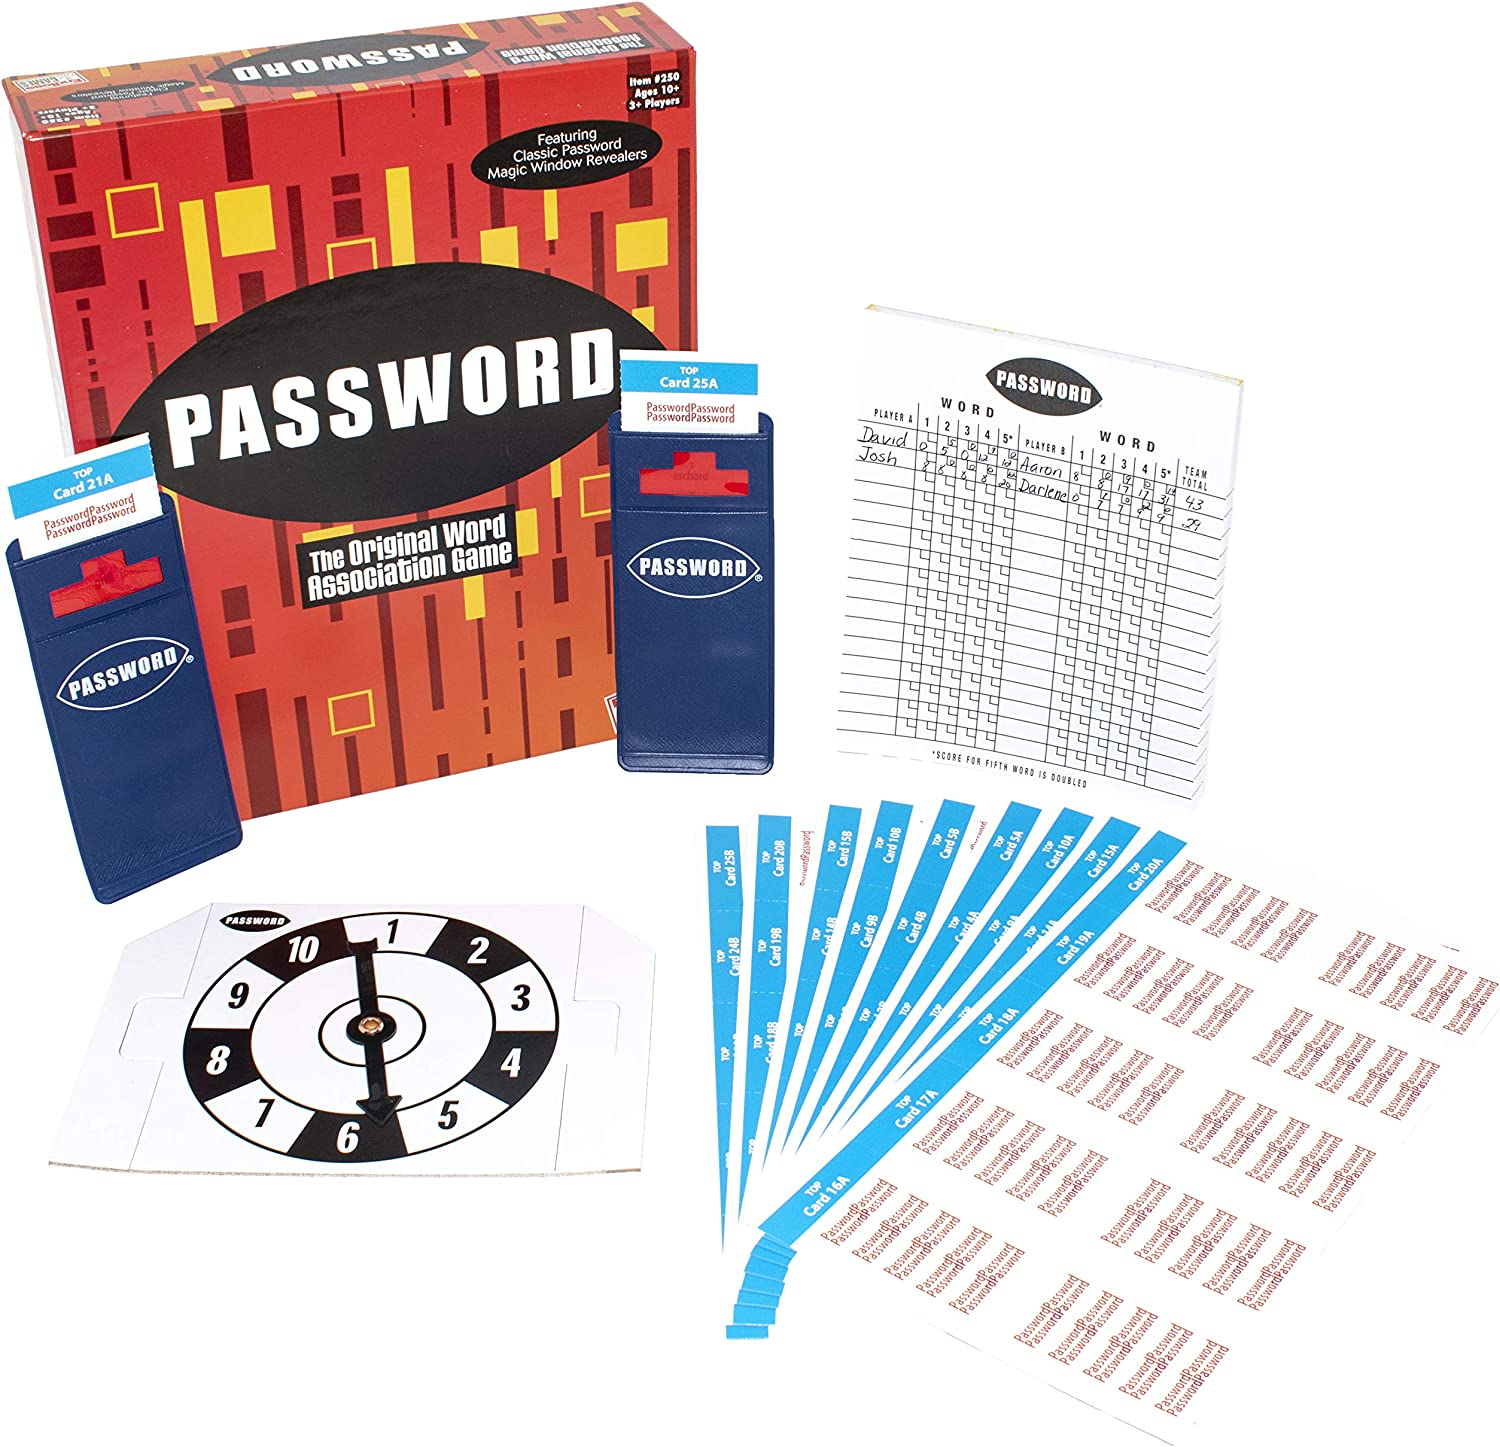 Classic Password Game Based Off The Original 60s Gameshow One Word Clue Johnson Smith Co